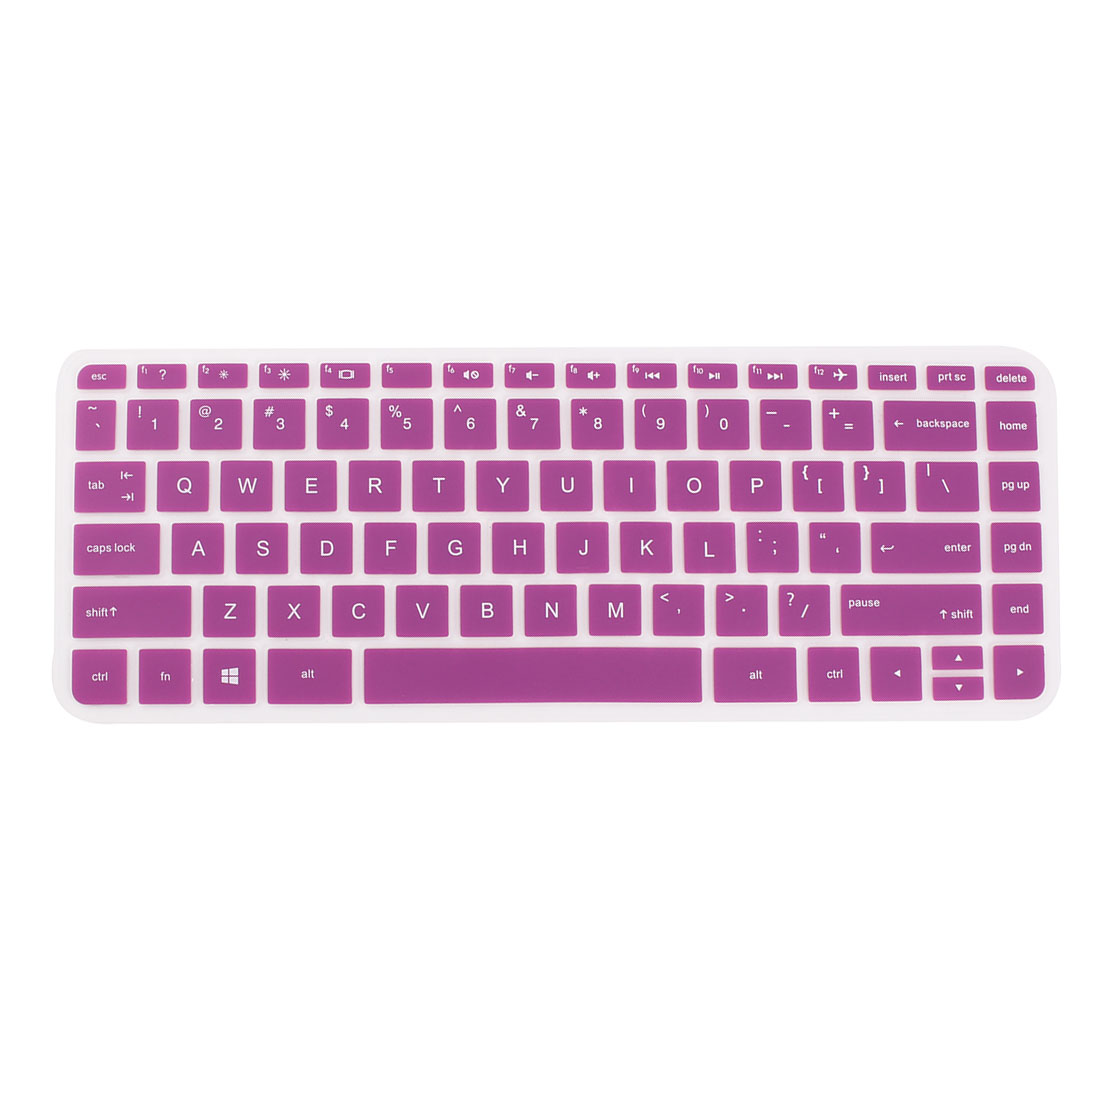 Please Compare Keyboard Layout and Model m6-p013dx m6-w010dx m6-w102dx m6-w010dx PcProfessional Black Ultra Thin Silicone Gel Keyboard Cover for HP m6-p m6-w series Keyboard Protector